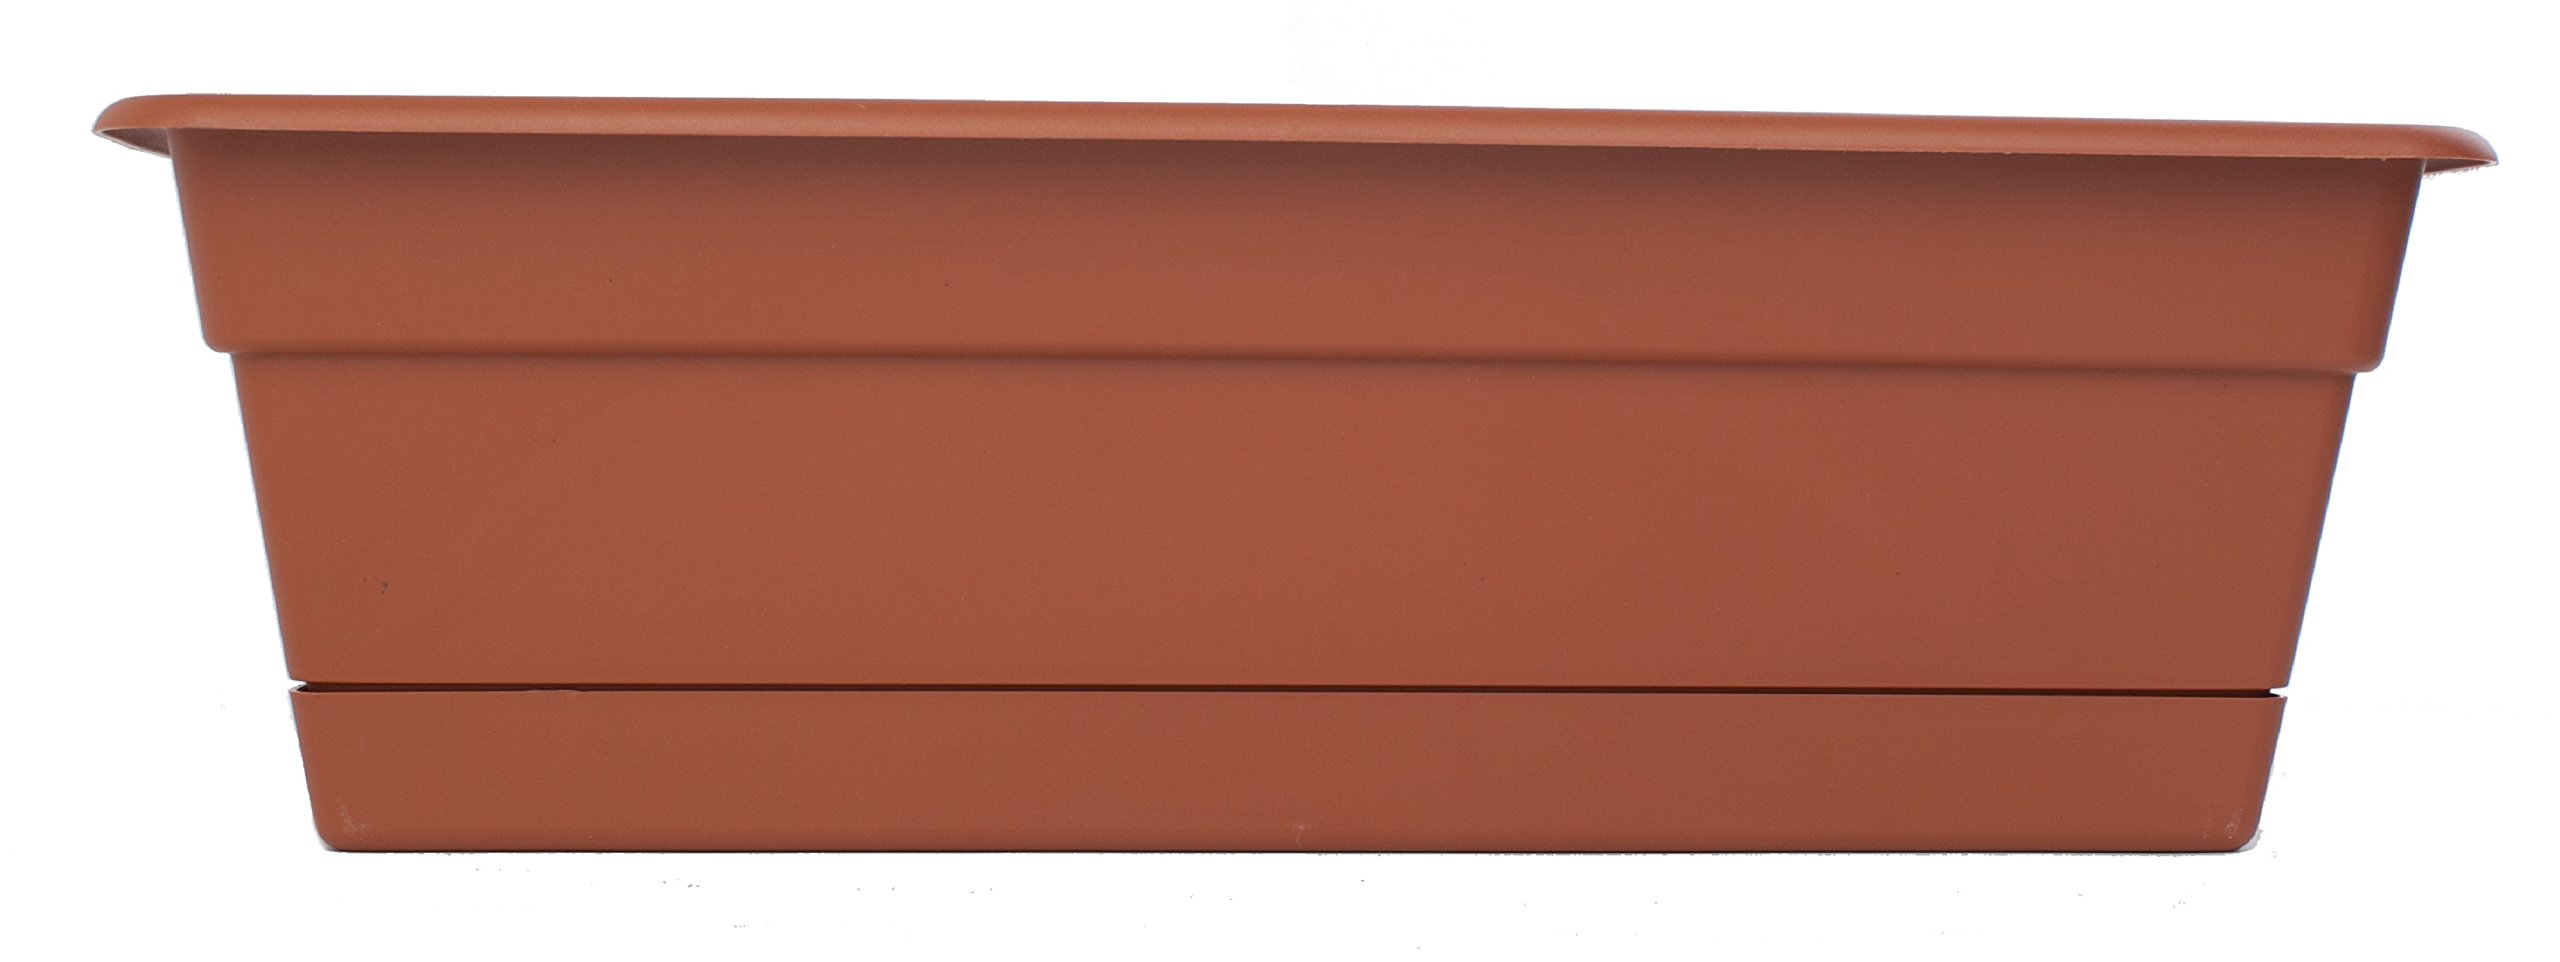 Bloem DCBT24-46 Dura Cotta Plant Window Box, 24-Inch, Terra Cotta